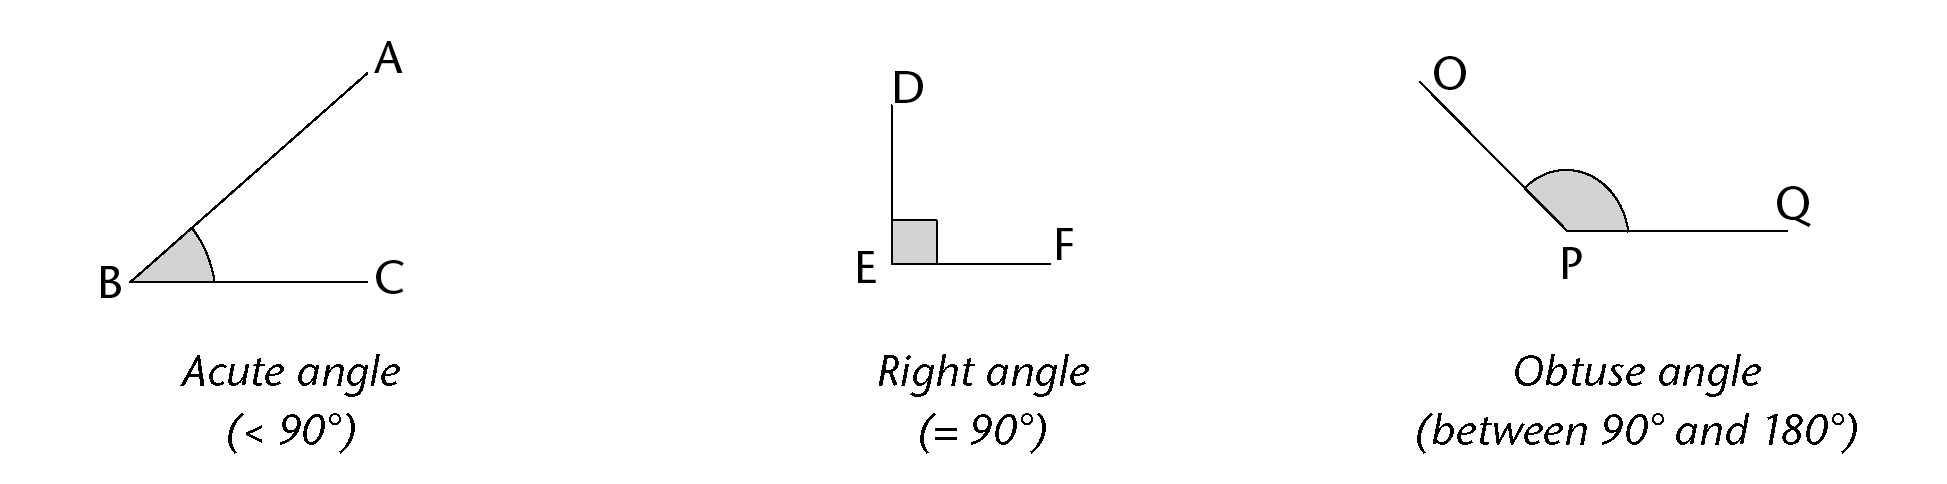 hight resolution of Unknown angles and sides of quadrilaterals   Geometry of shapes   Siyavula